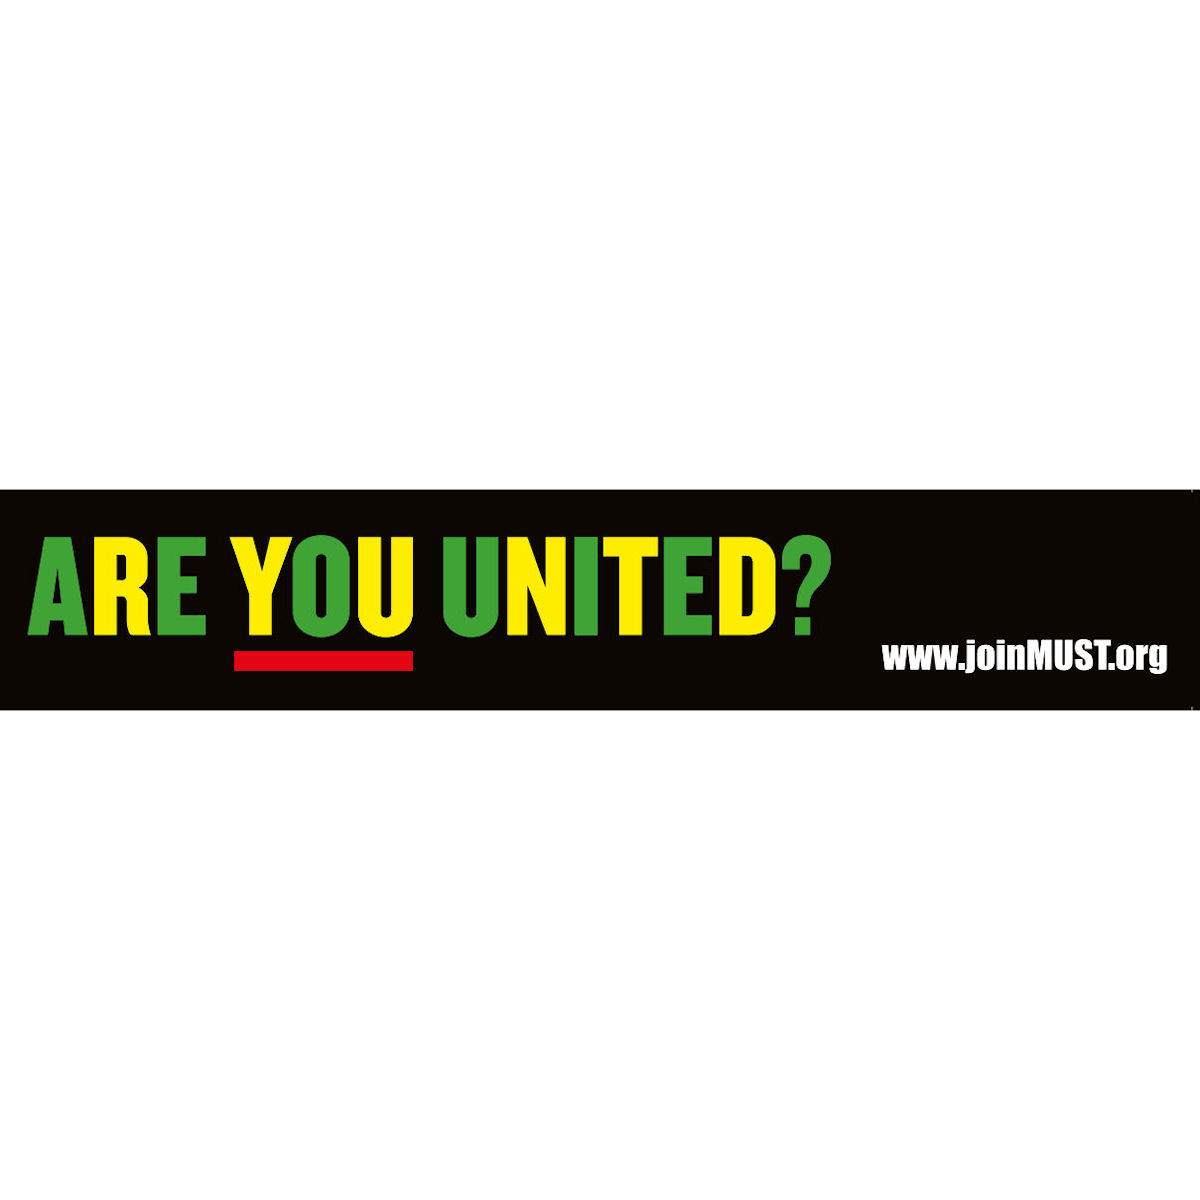 are-you-united-sticker-52024-zoom.jpg